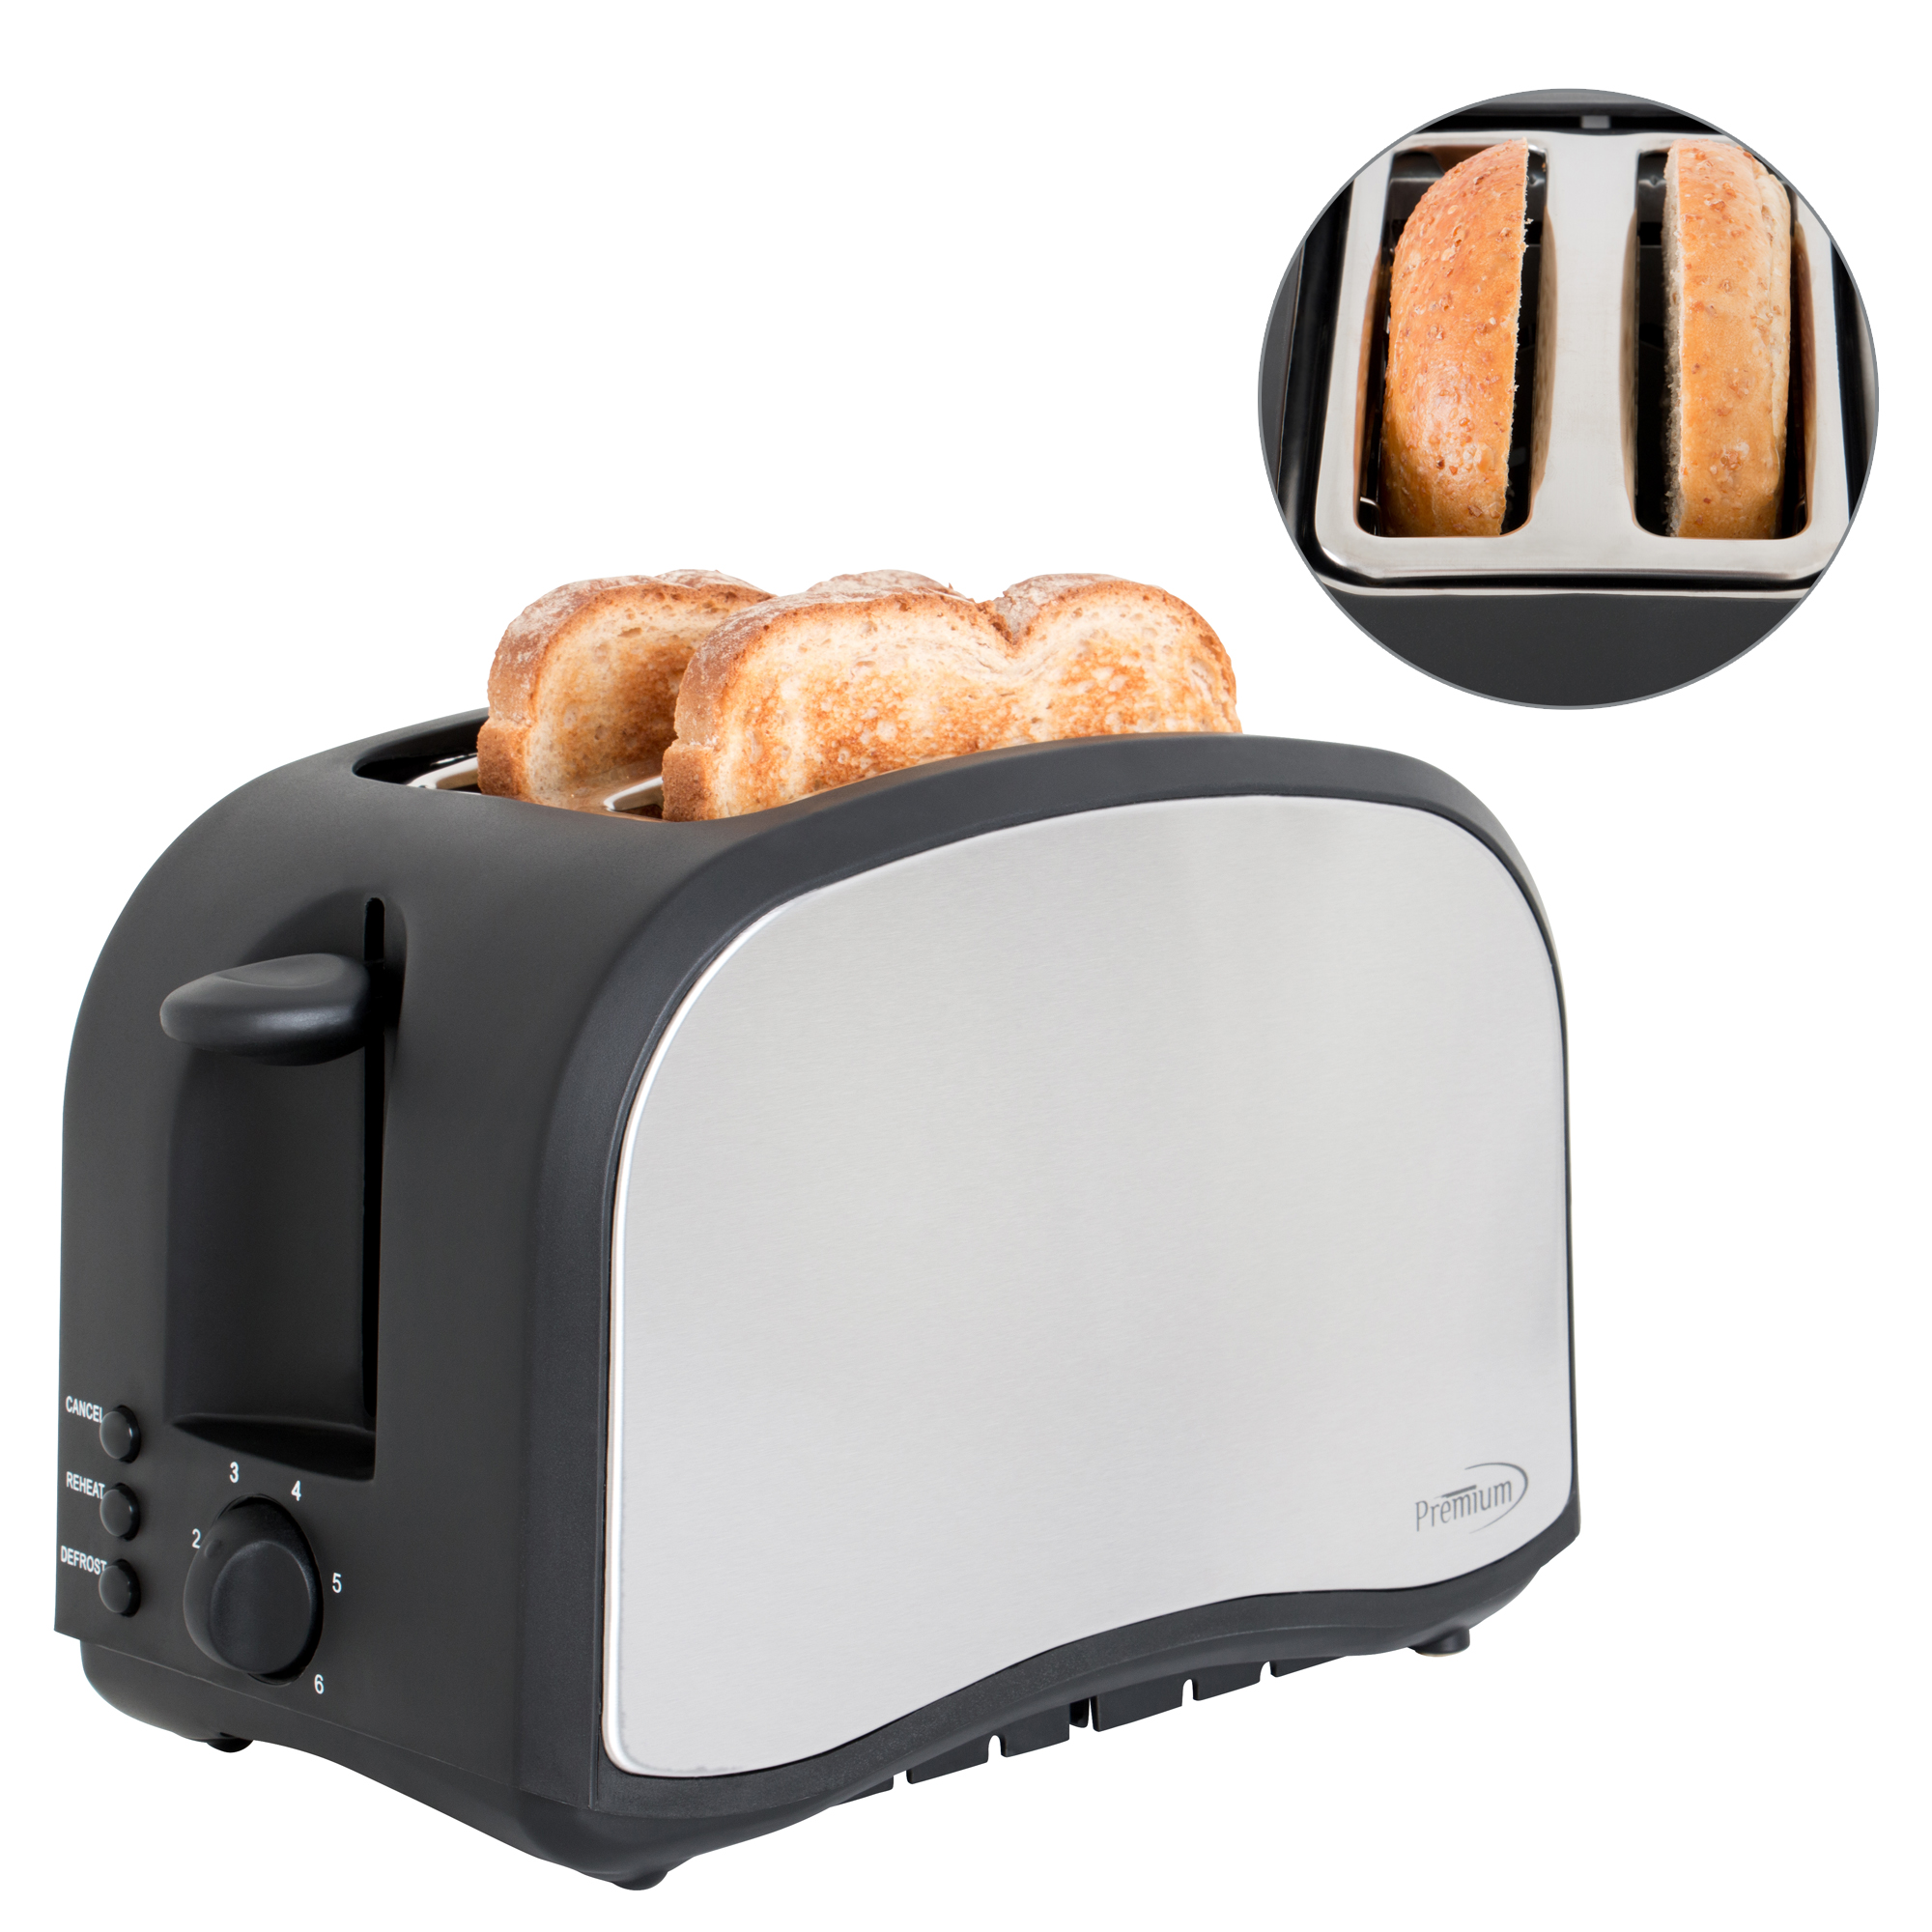 Premium Appliances 2 Slice Toaster Stainless Steel